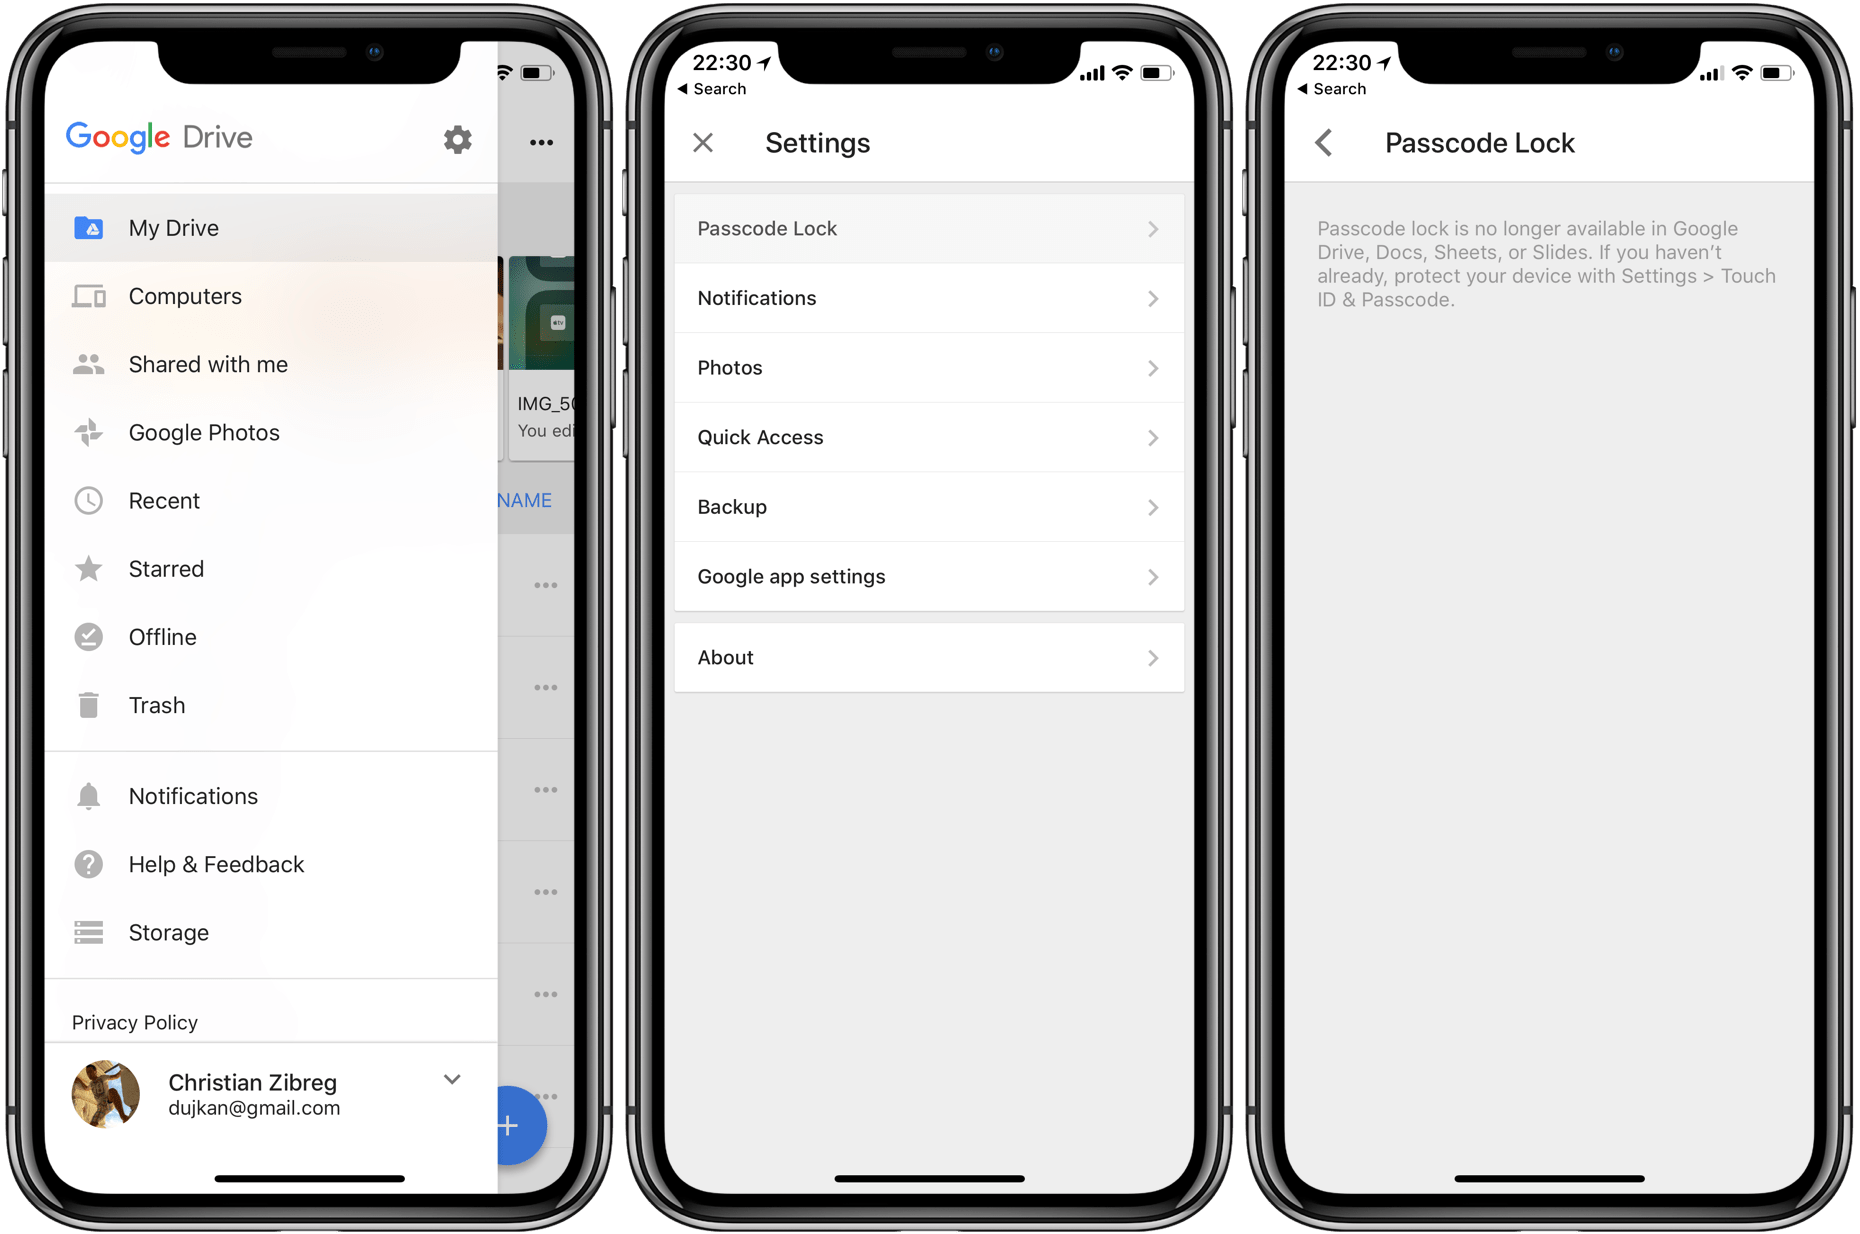 Removes Passcode Touch Id Face Id Lock From Drive Docs Sheets Amp Slides